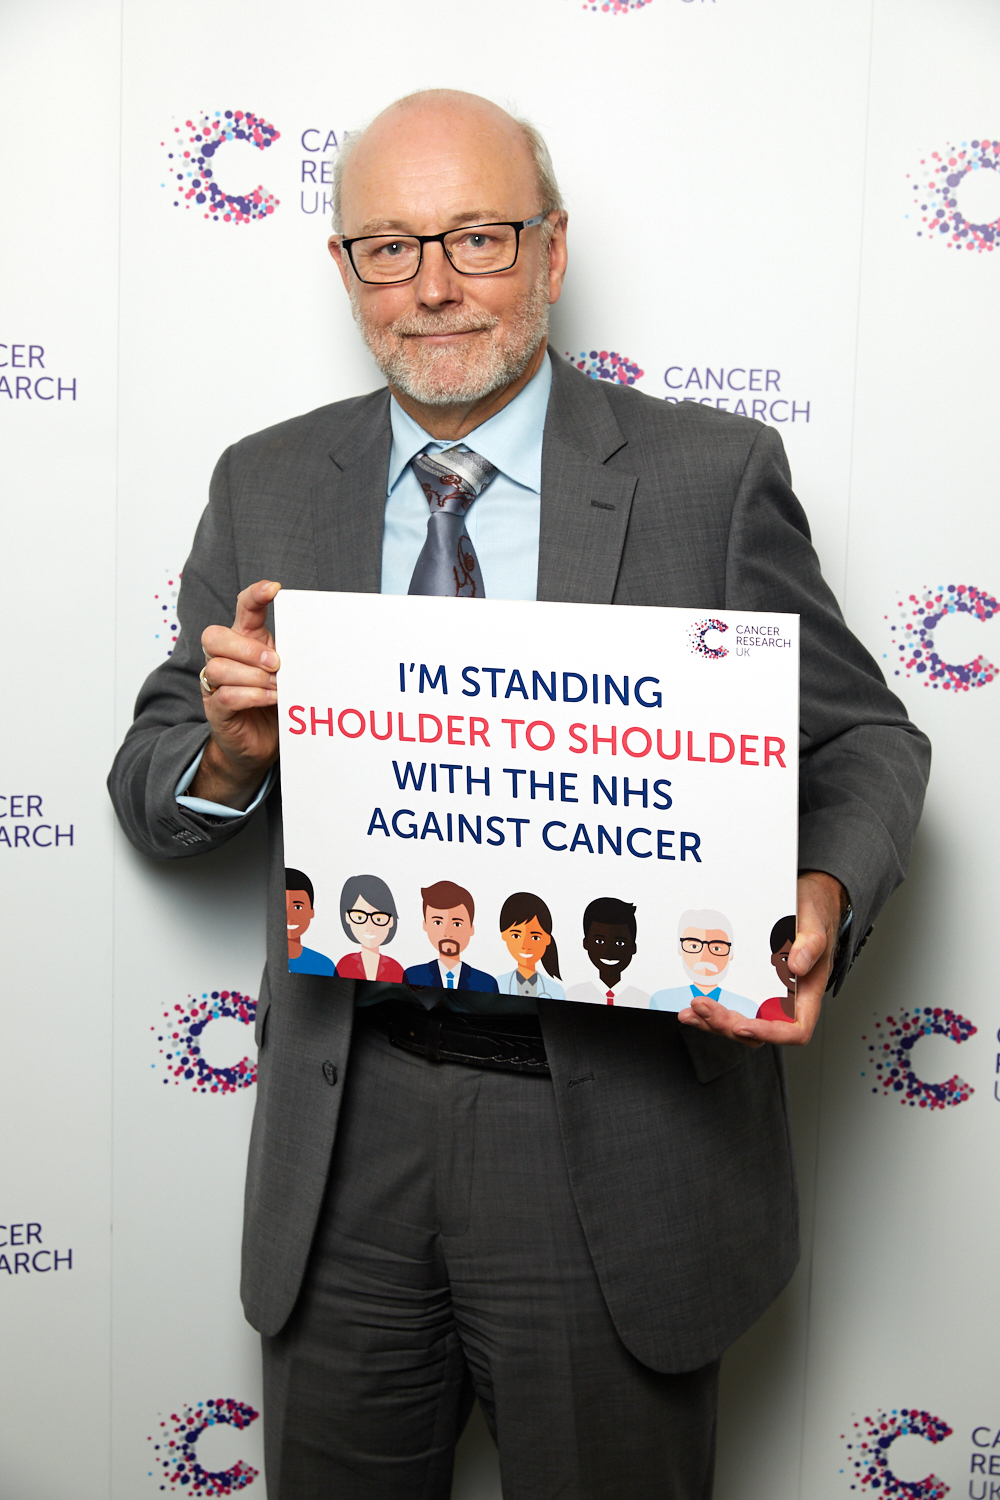 Alex takes a stand against cancer